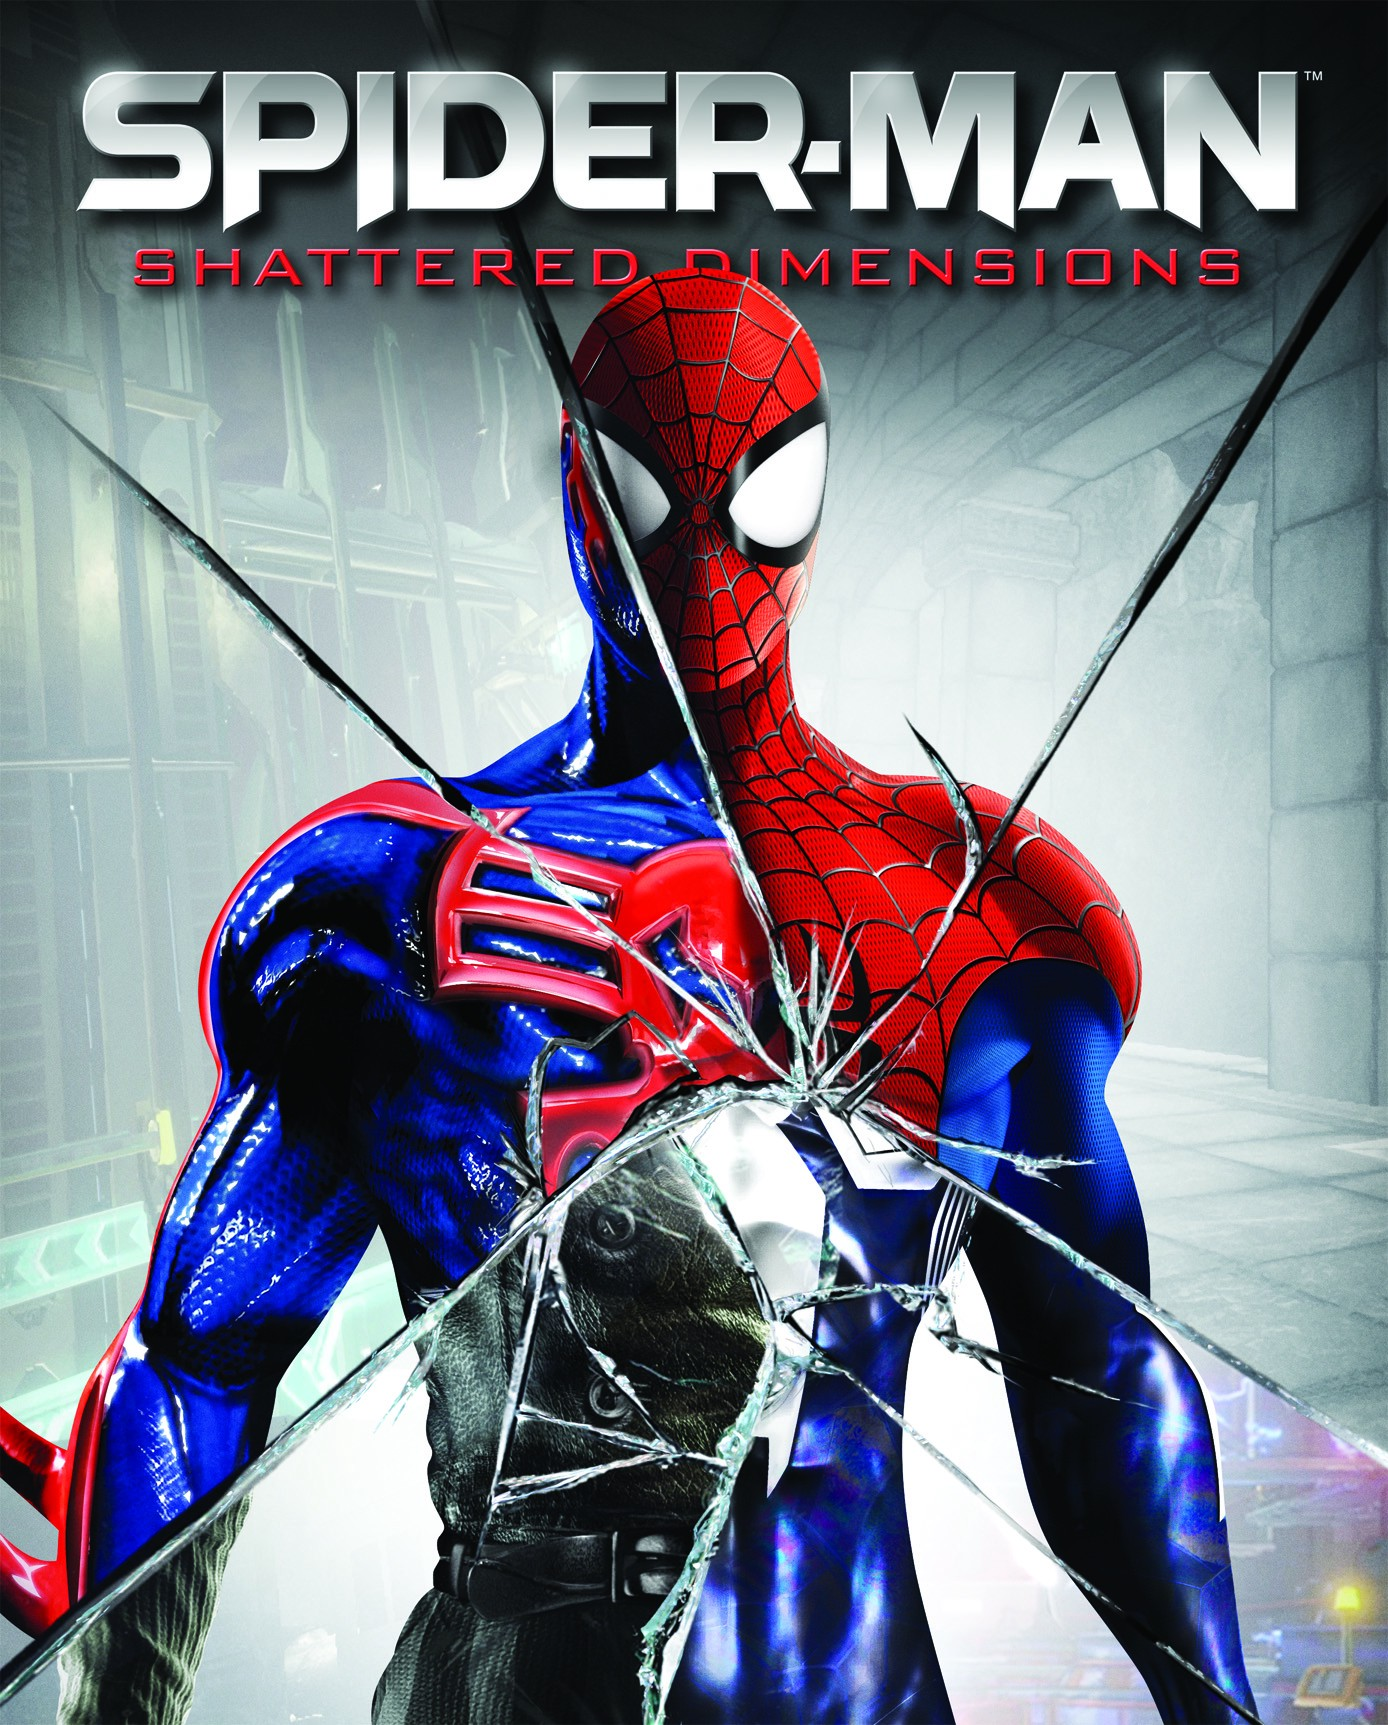 Spider man shattered dimensions free download full crack | fully.